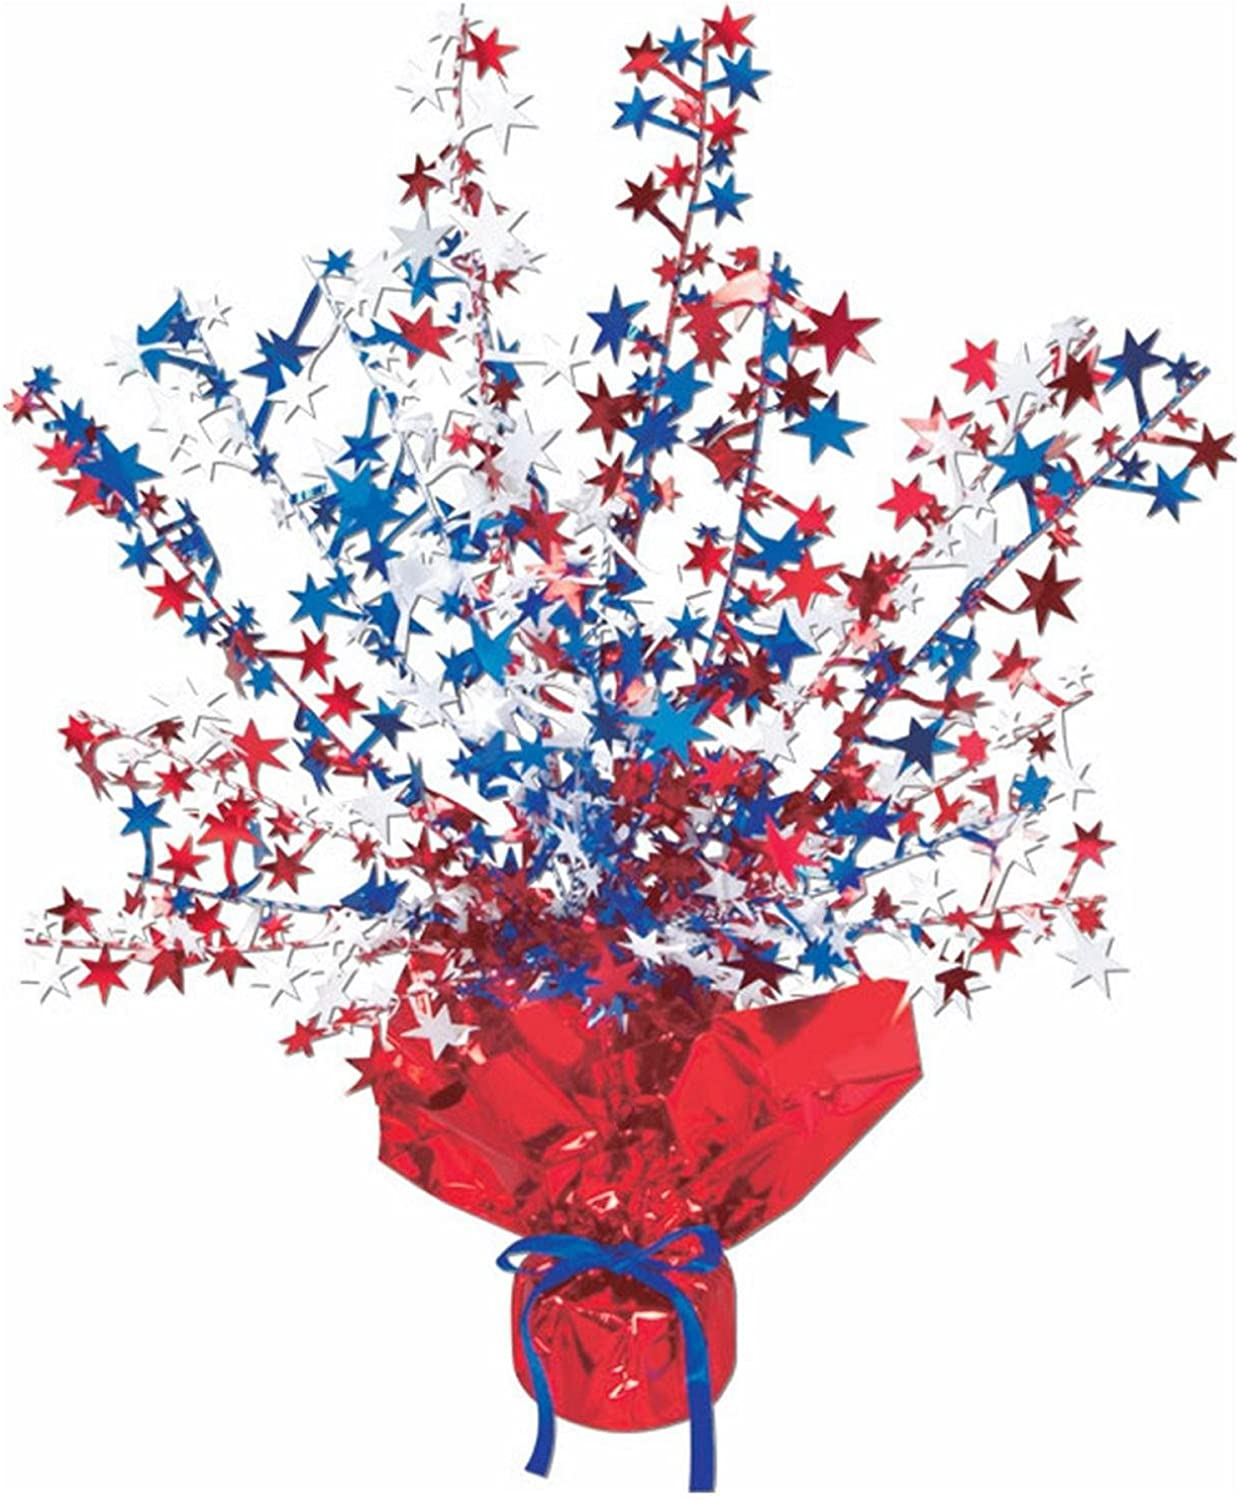 Club Pack of 12 Red, White and bluee Star Gleam 'N Burst Centerpiece Party Decorations 15